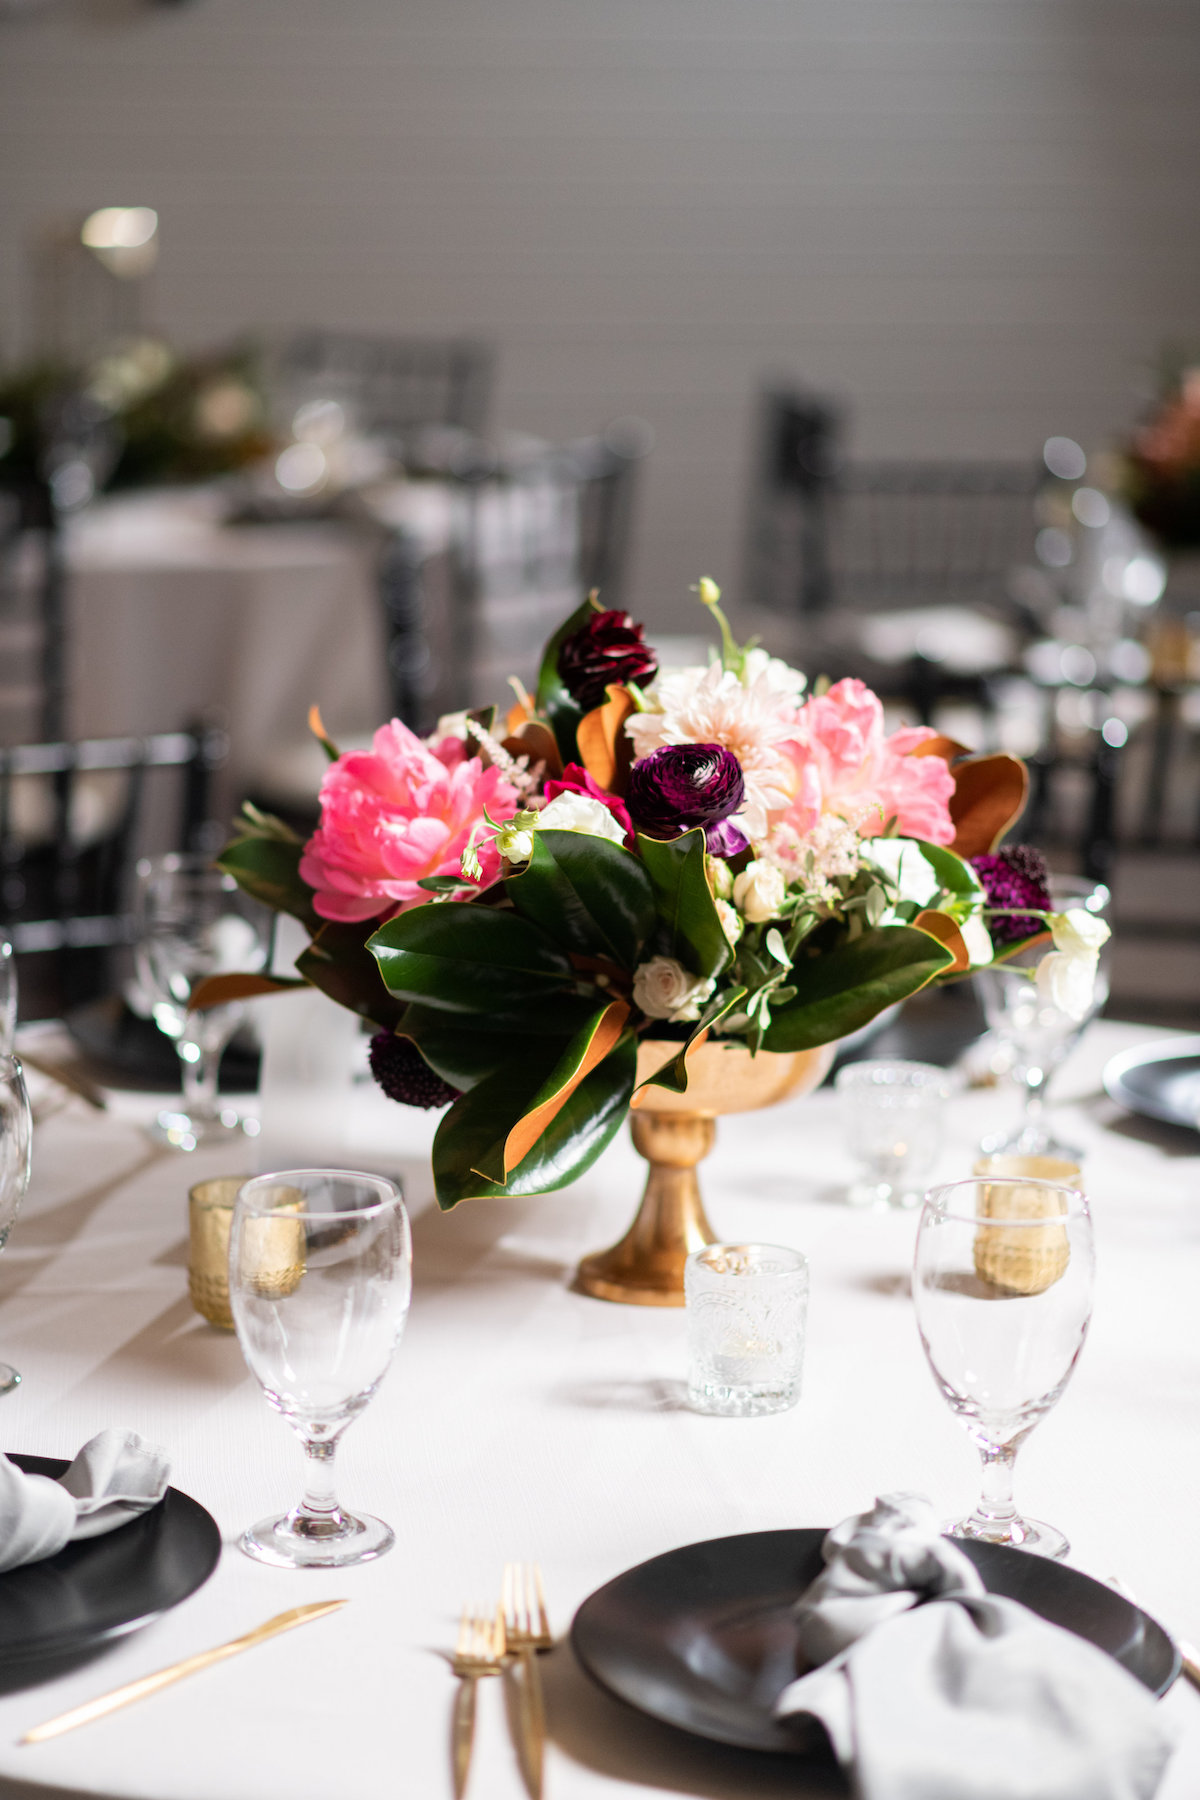 moody, colorful reception centerpiece arrangement